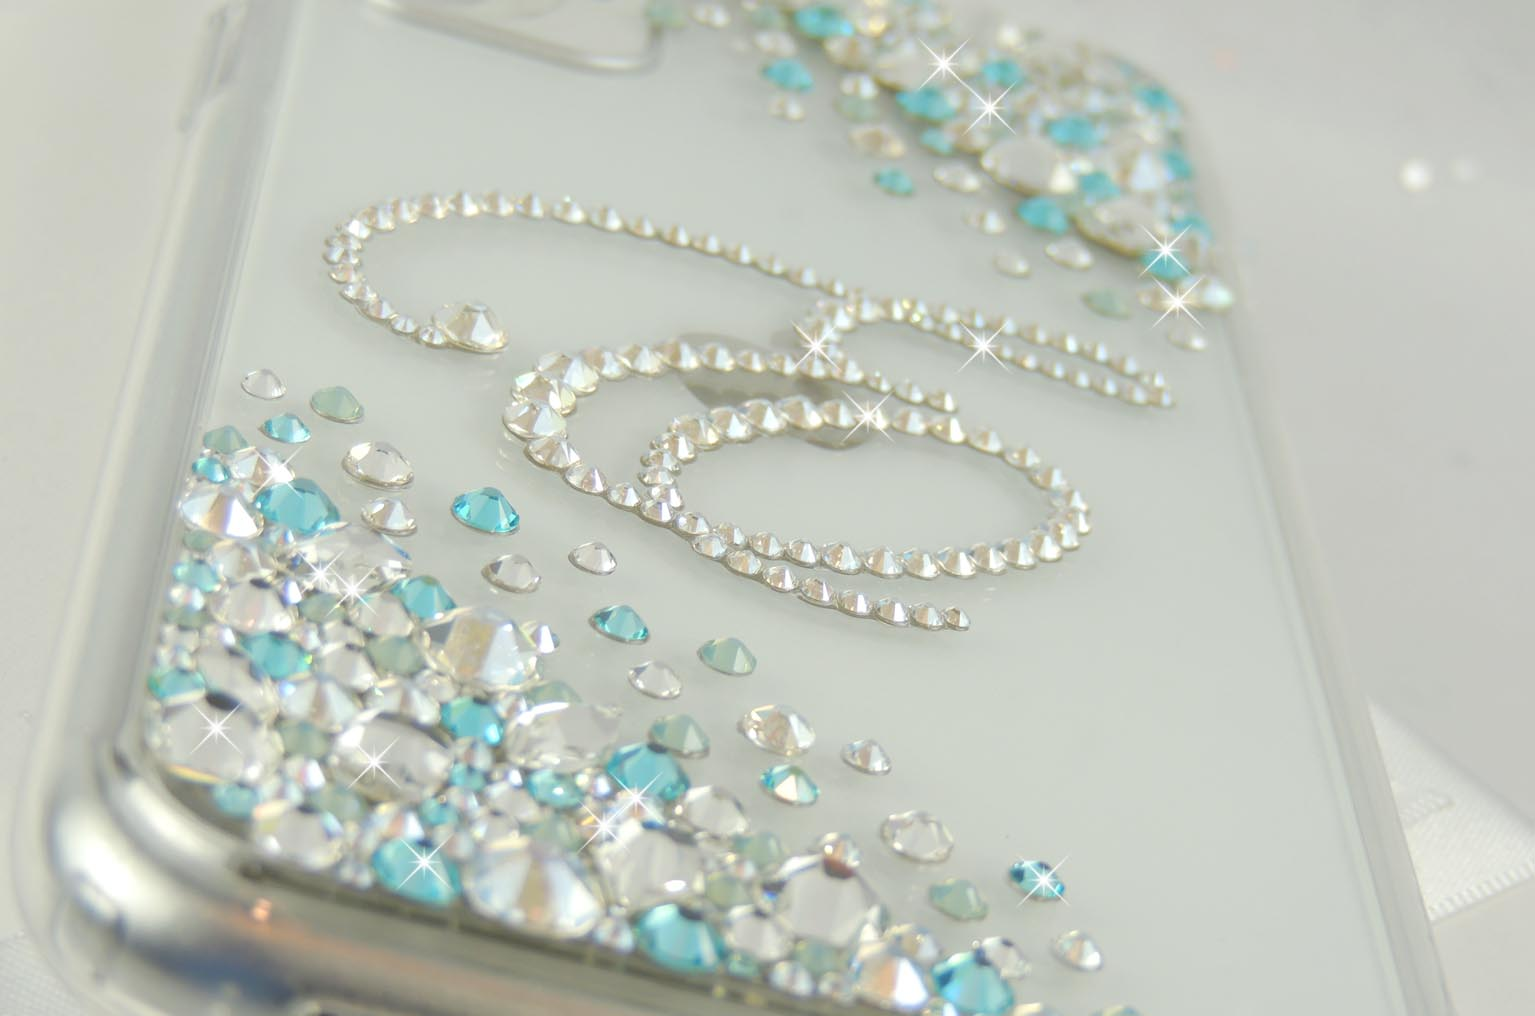 Tiffany blue bling Swarovski designer iPhone 11 case .